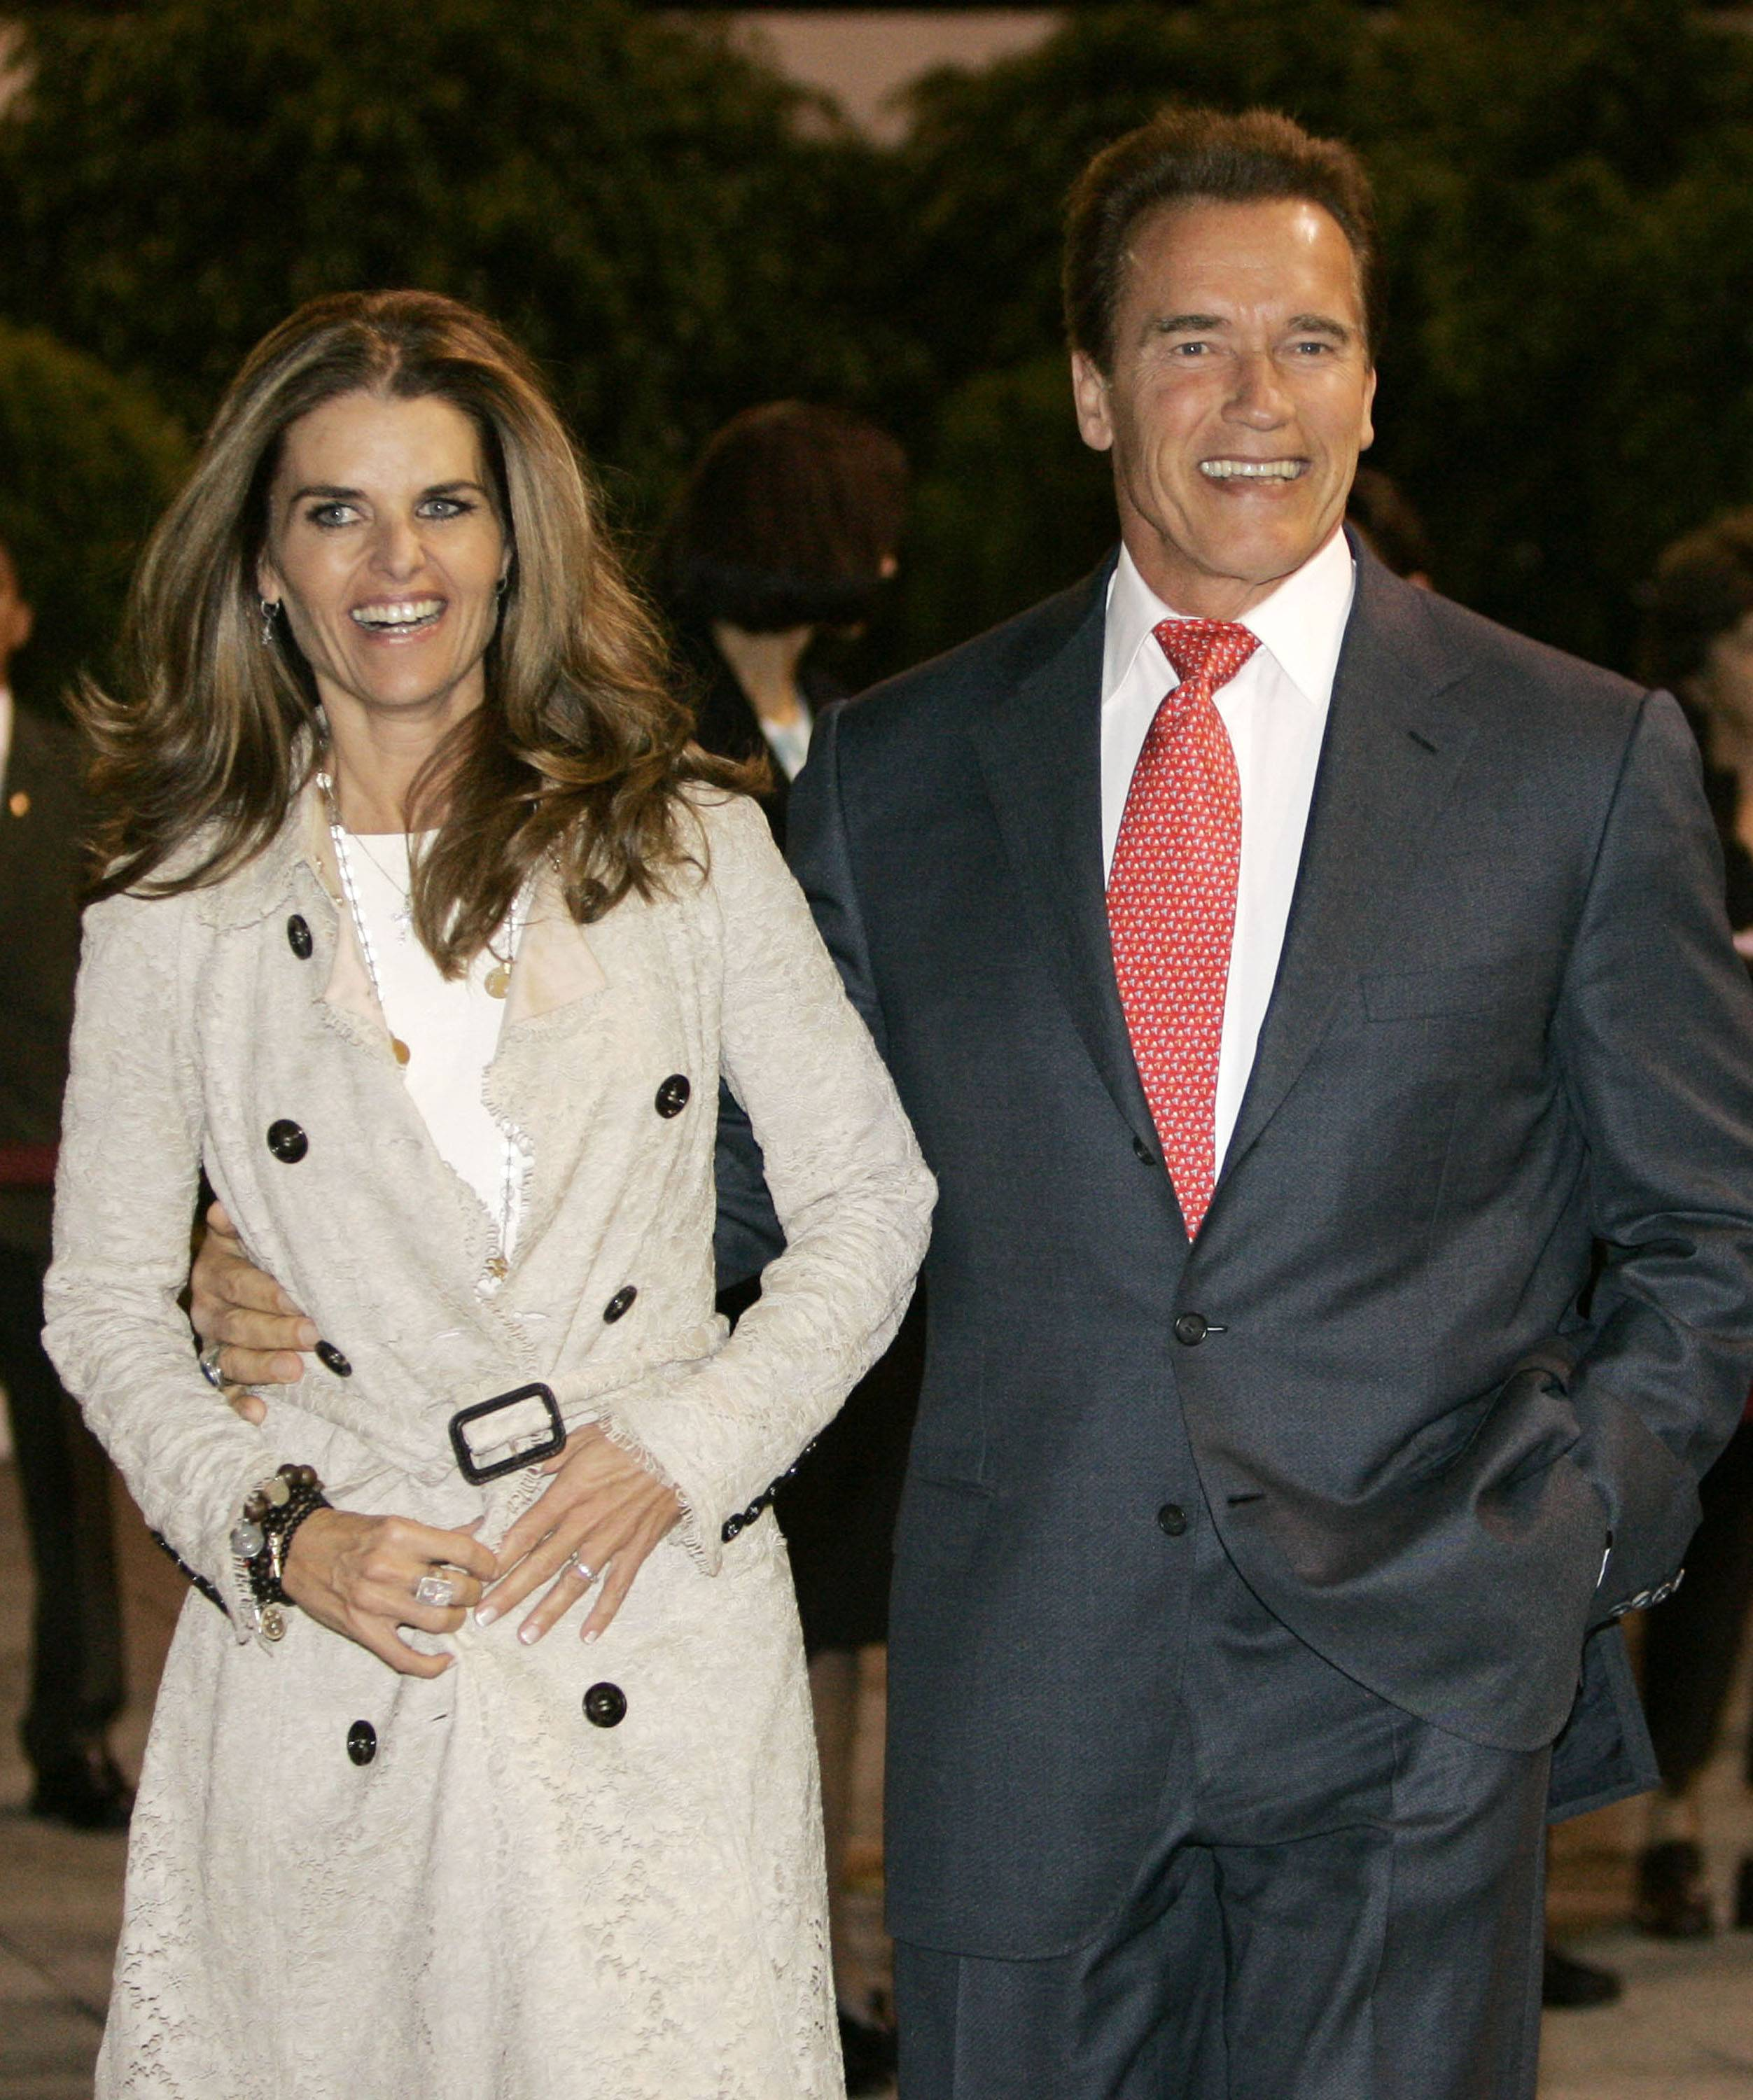 Arnold Schwarzenegger has changed his mind about paying his wife Maria Shriver spousal support in their upcoming divorce.